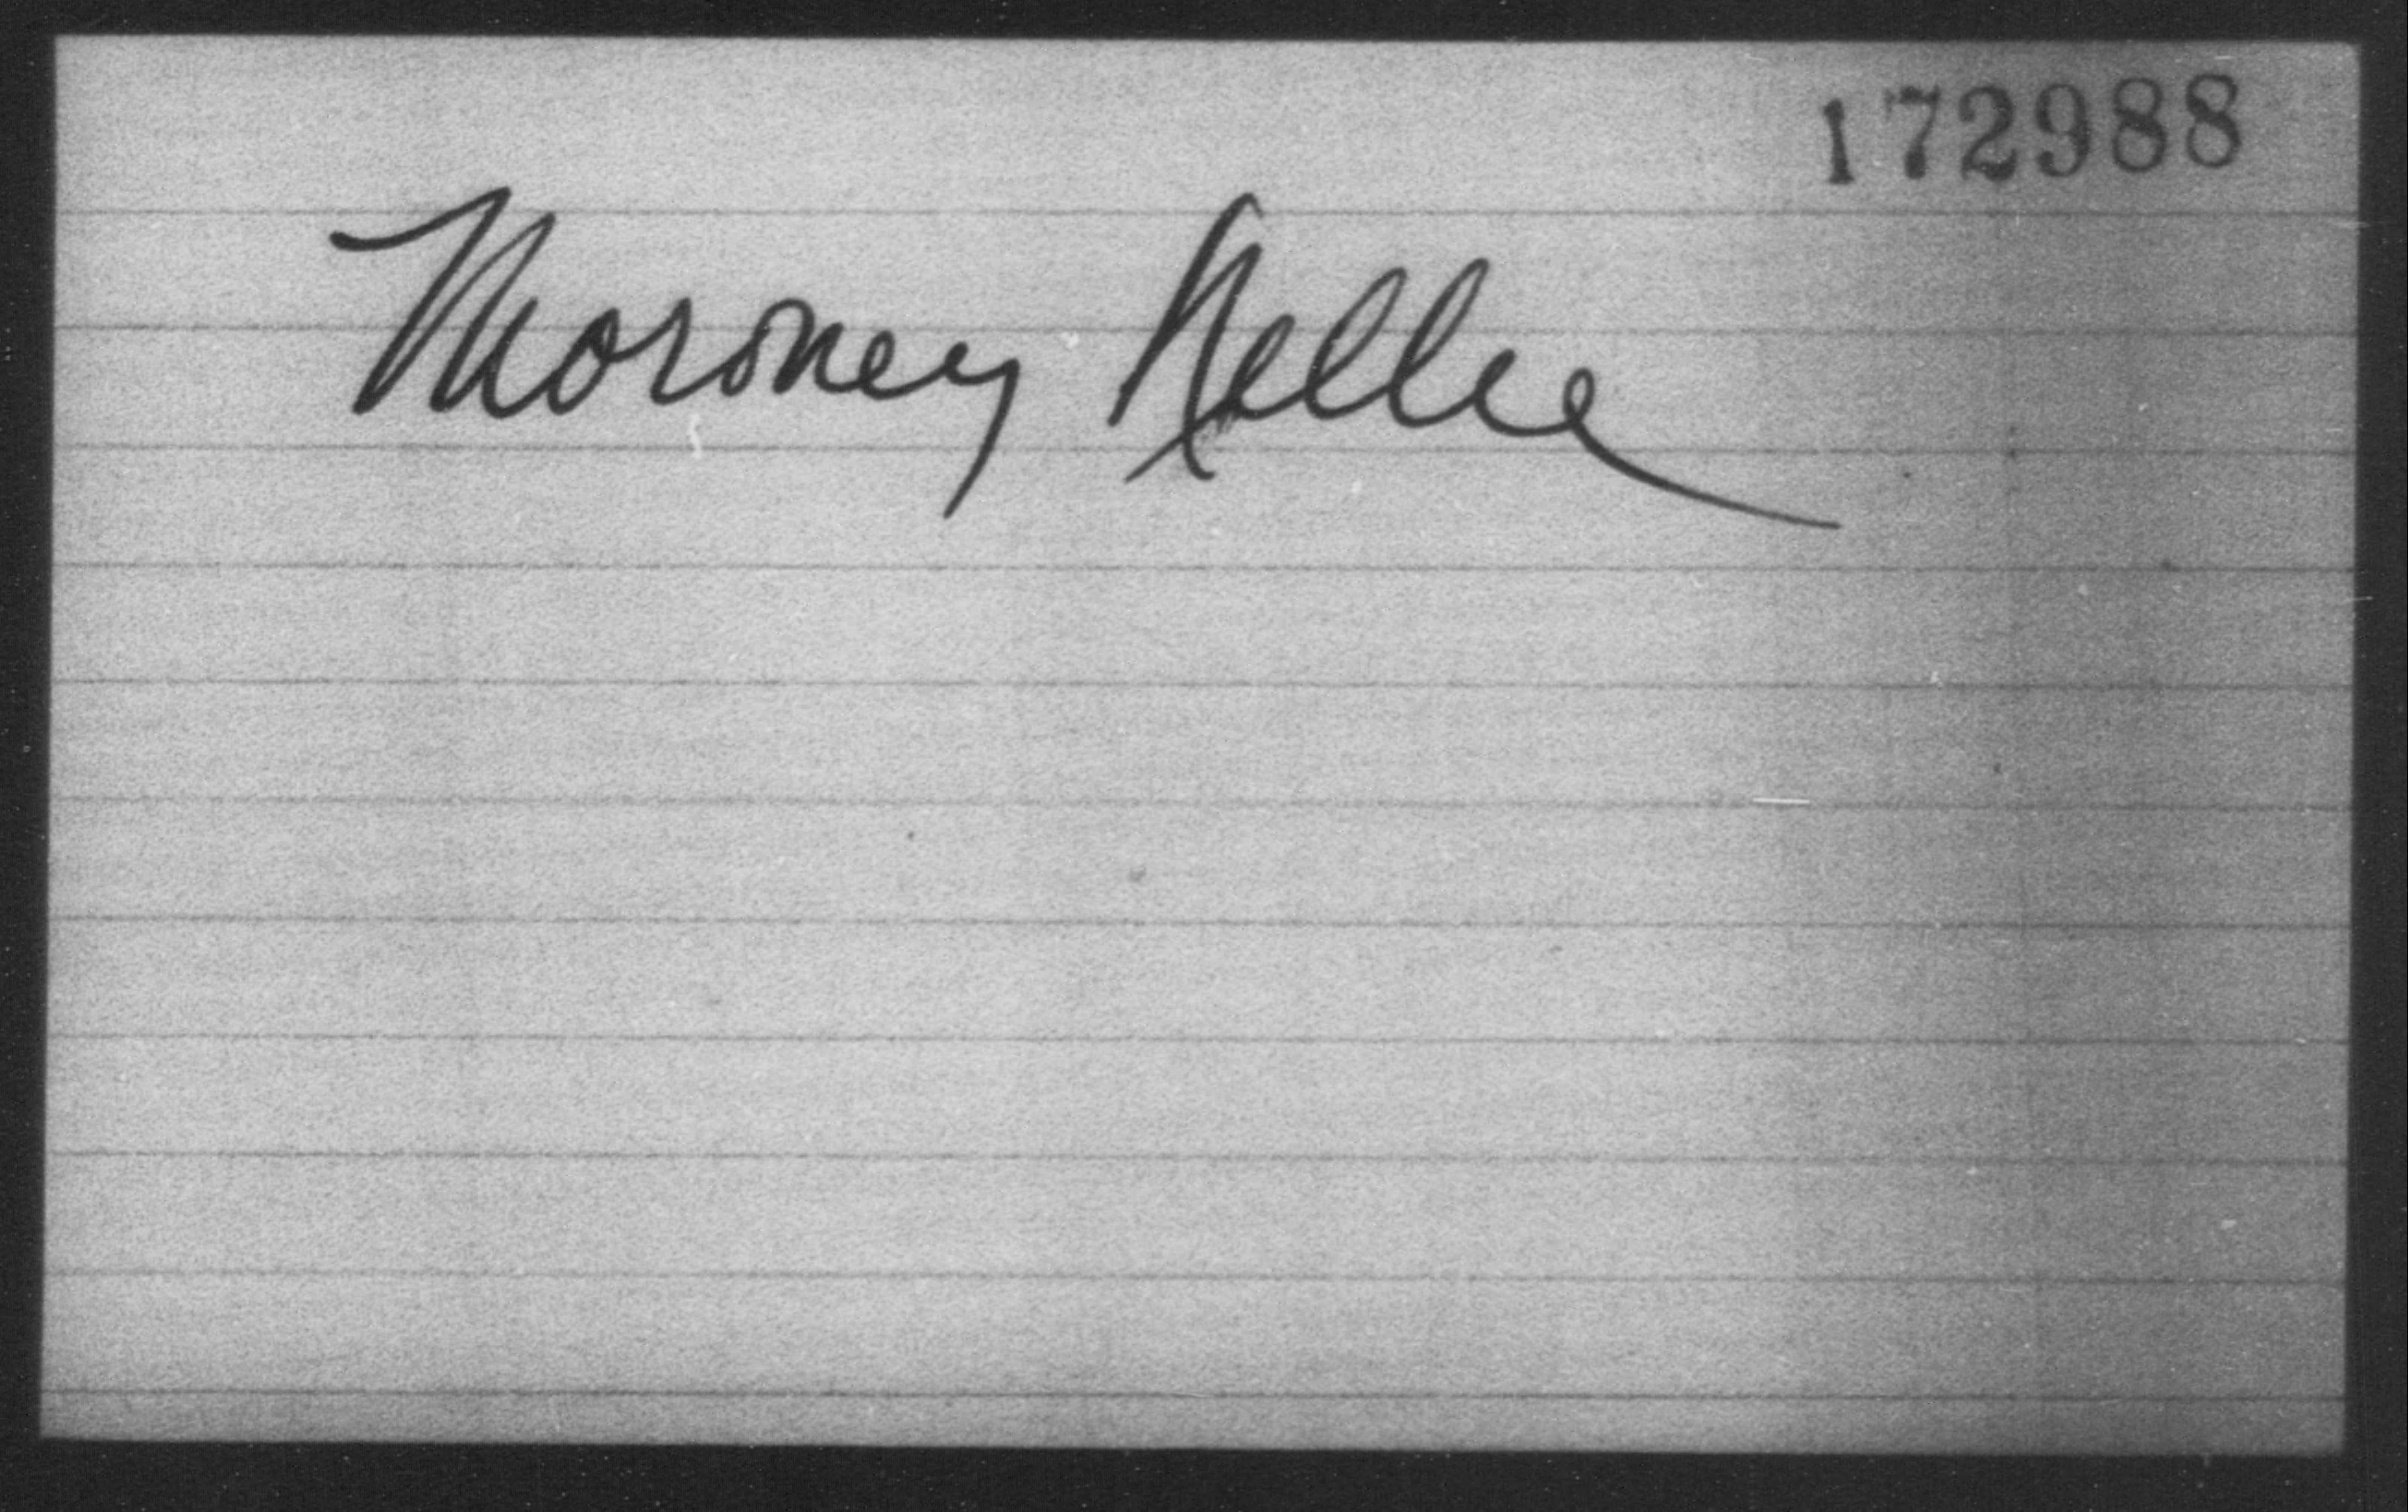 Moroney, Nellie - Born: [BLANK], Naturalized: [BLANK]